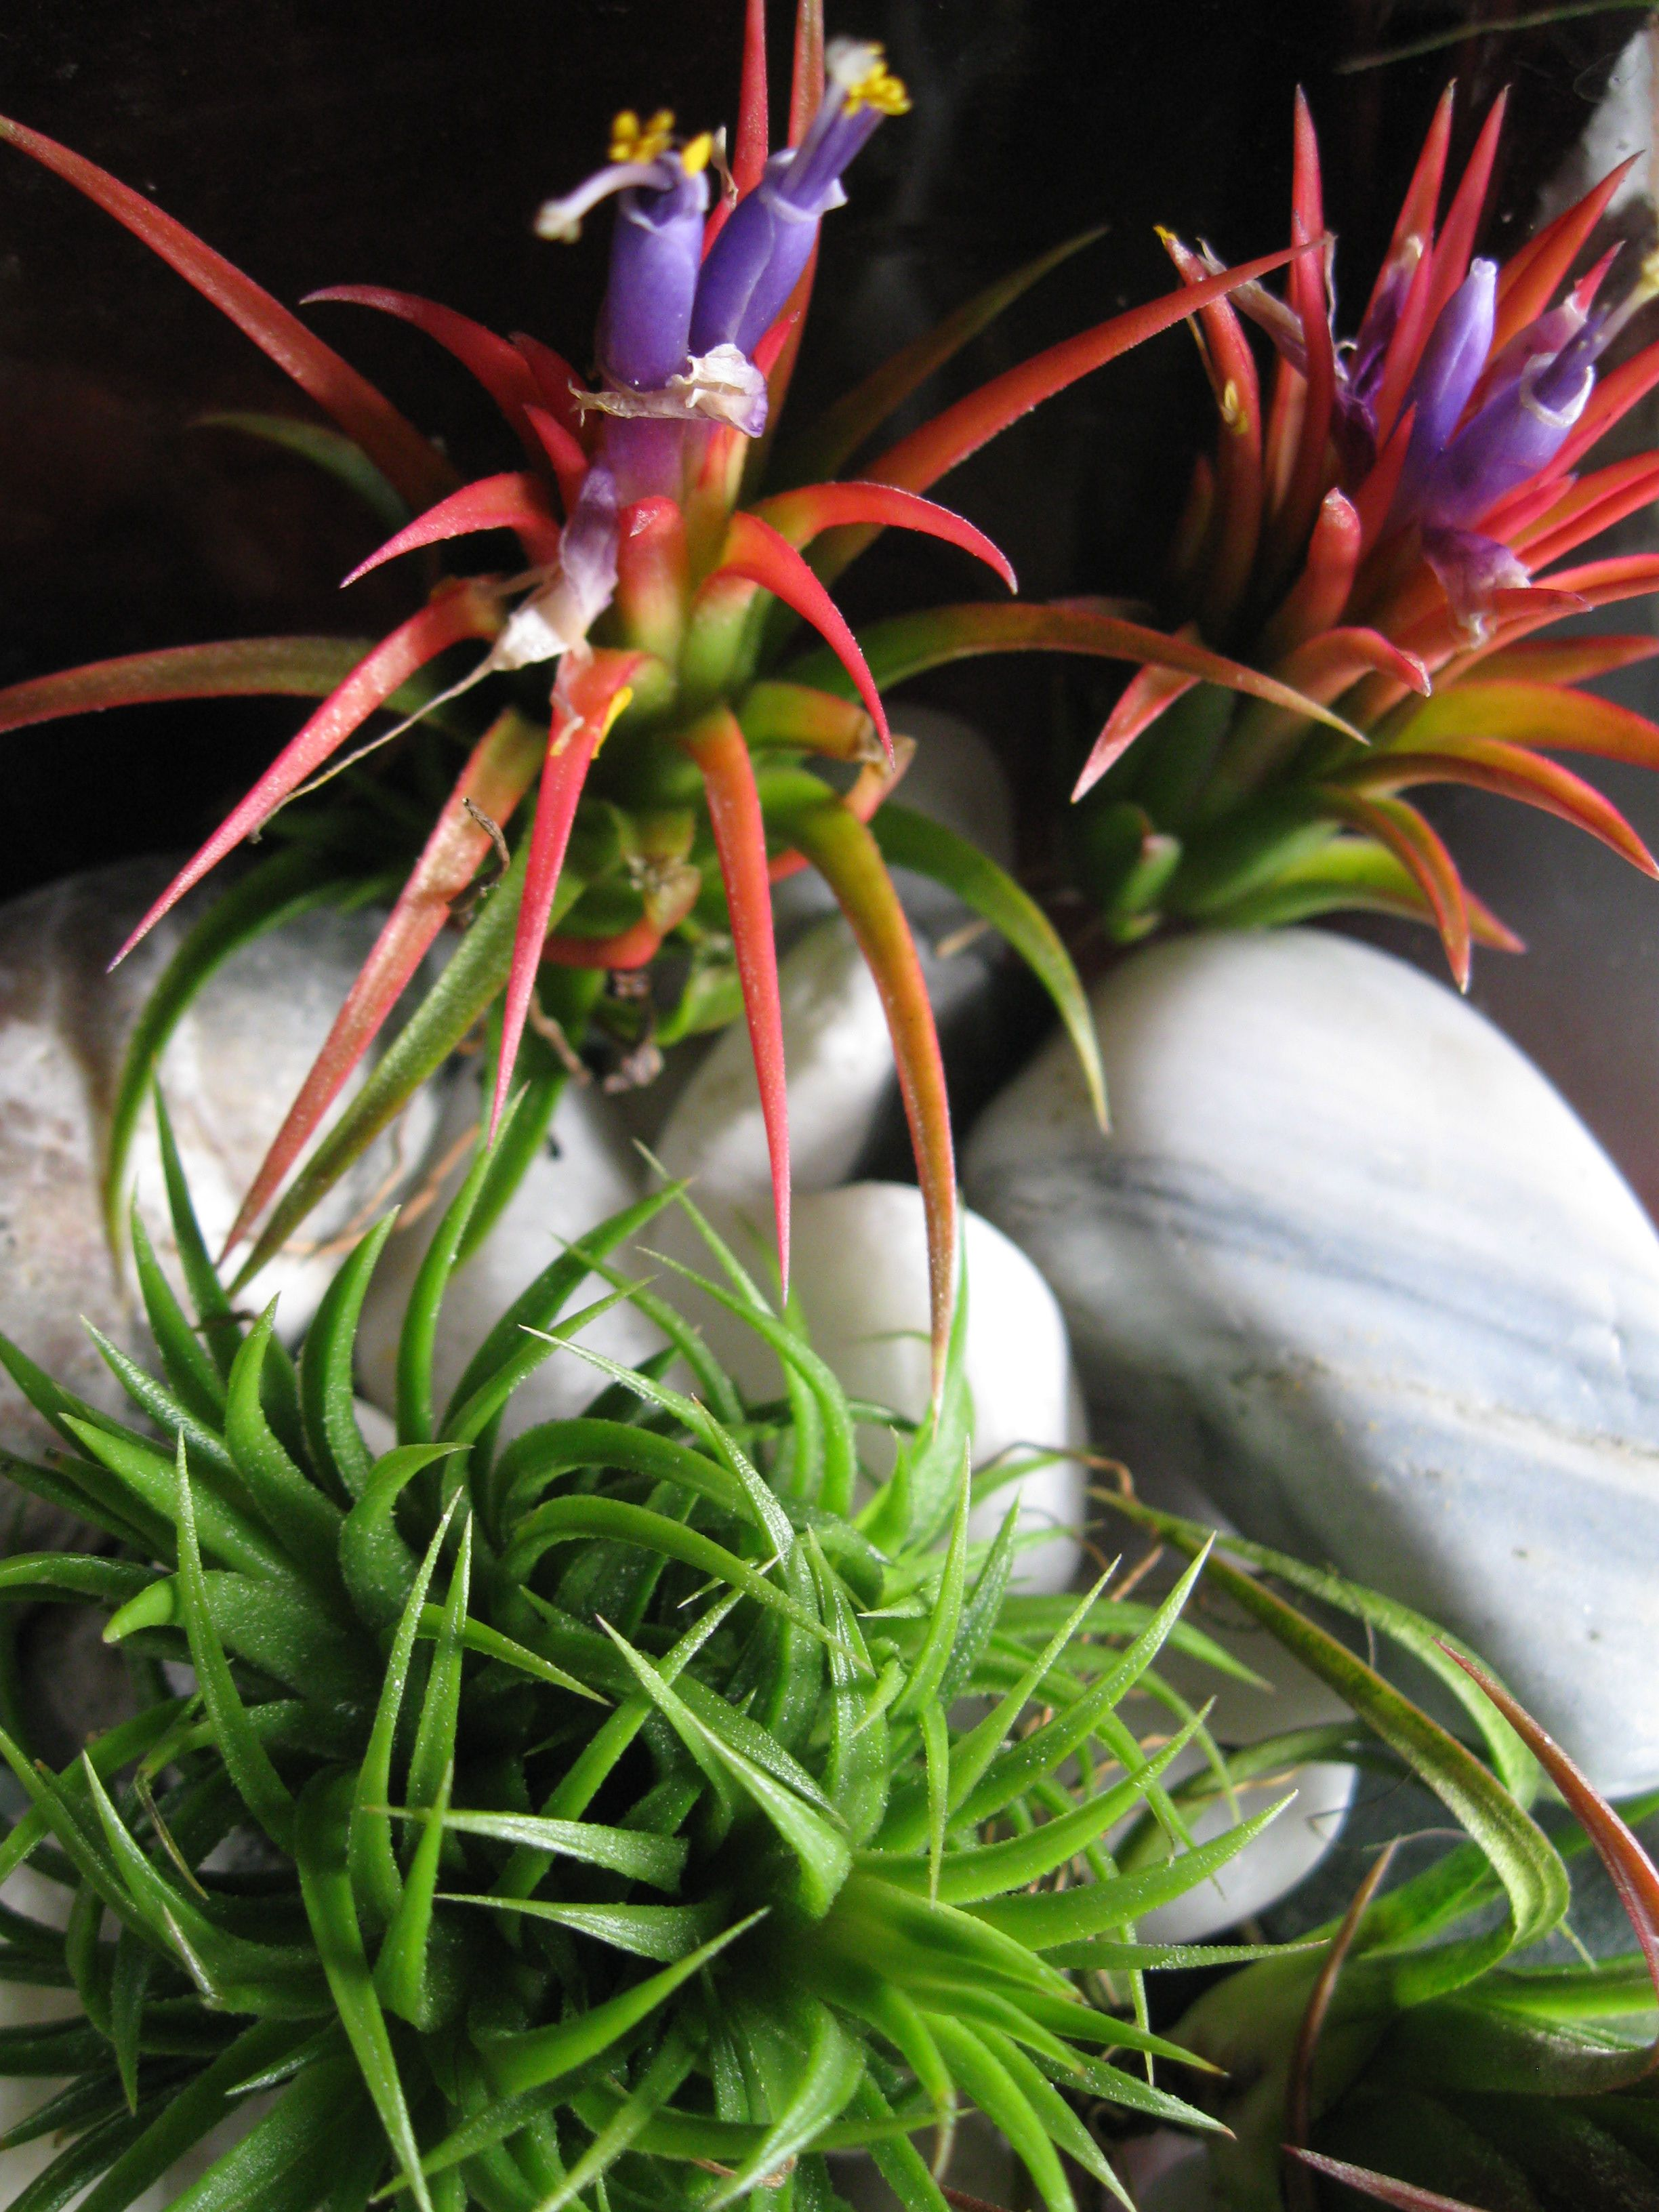 Tillandsia have some amazing colors. Love these little